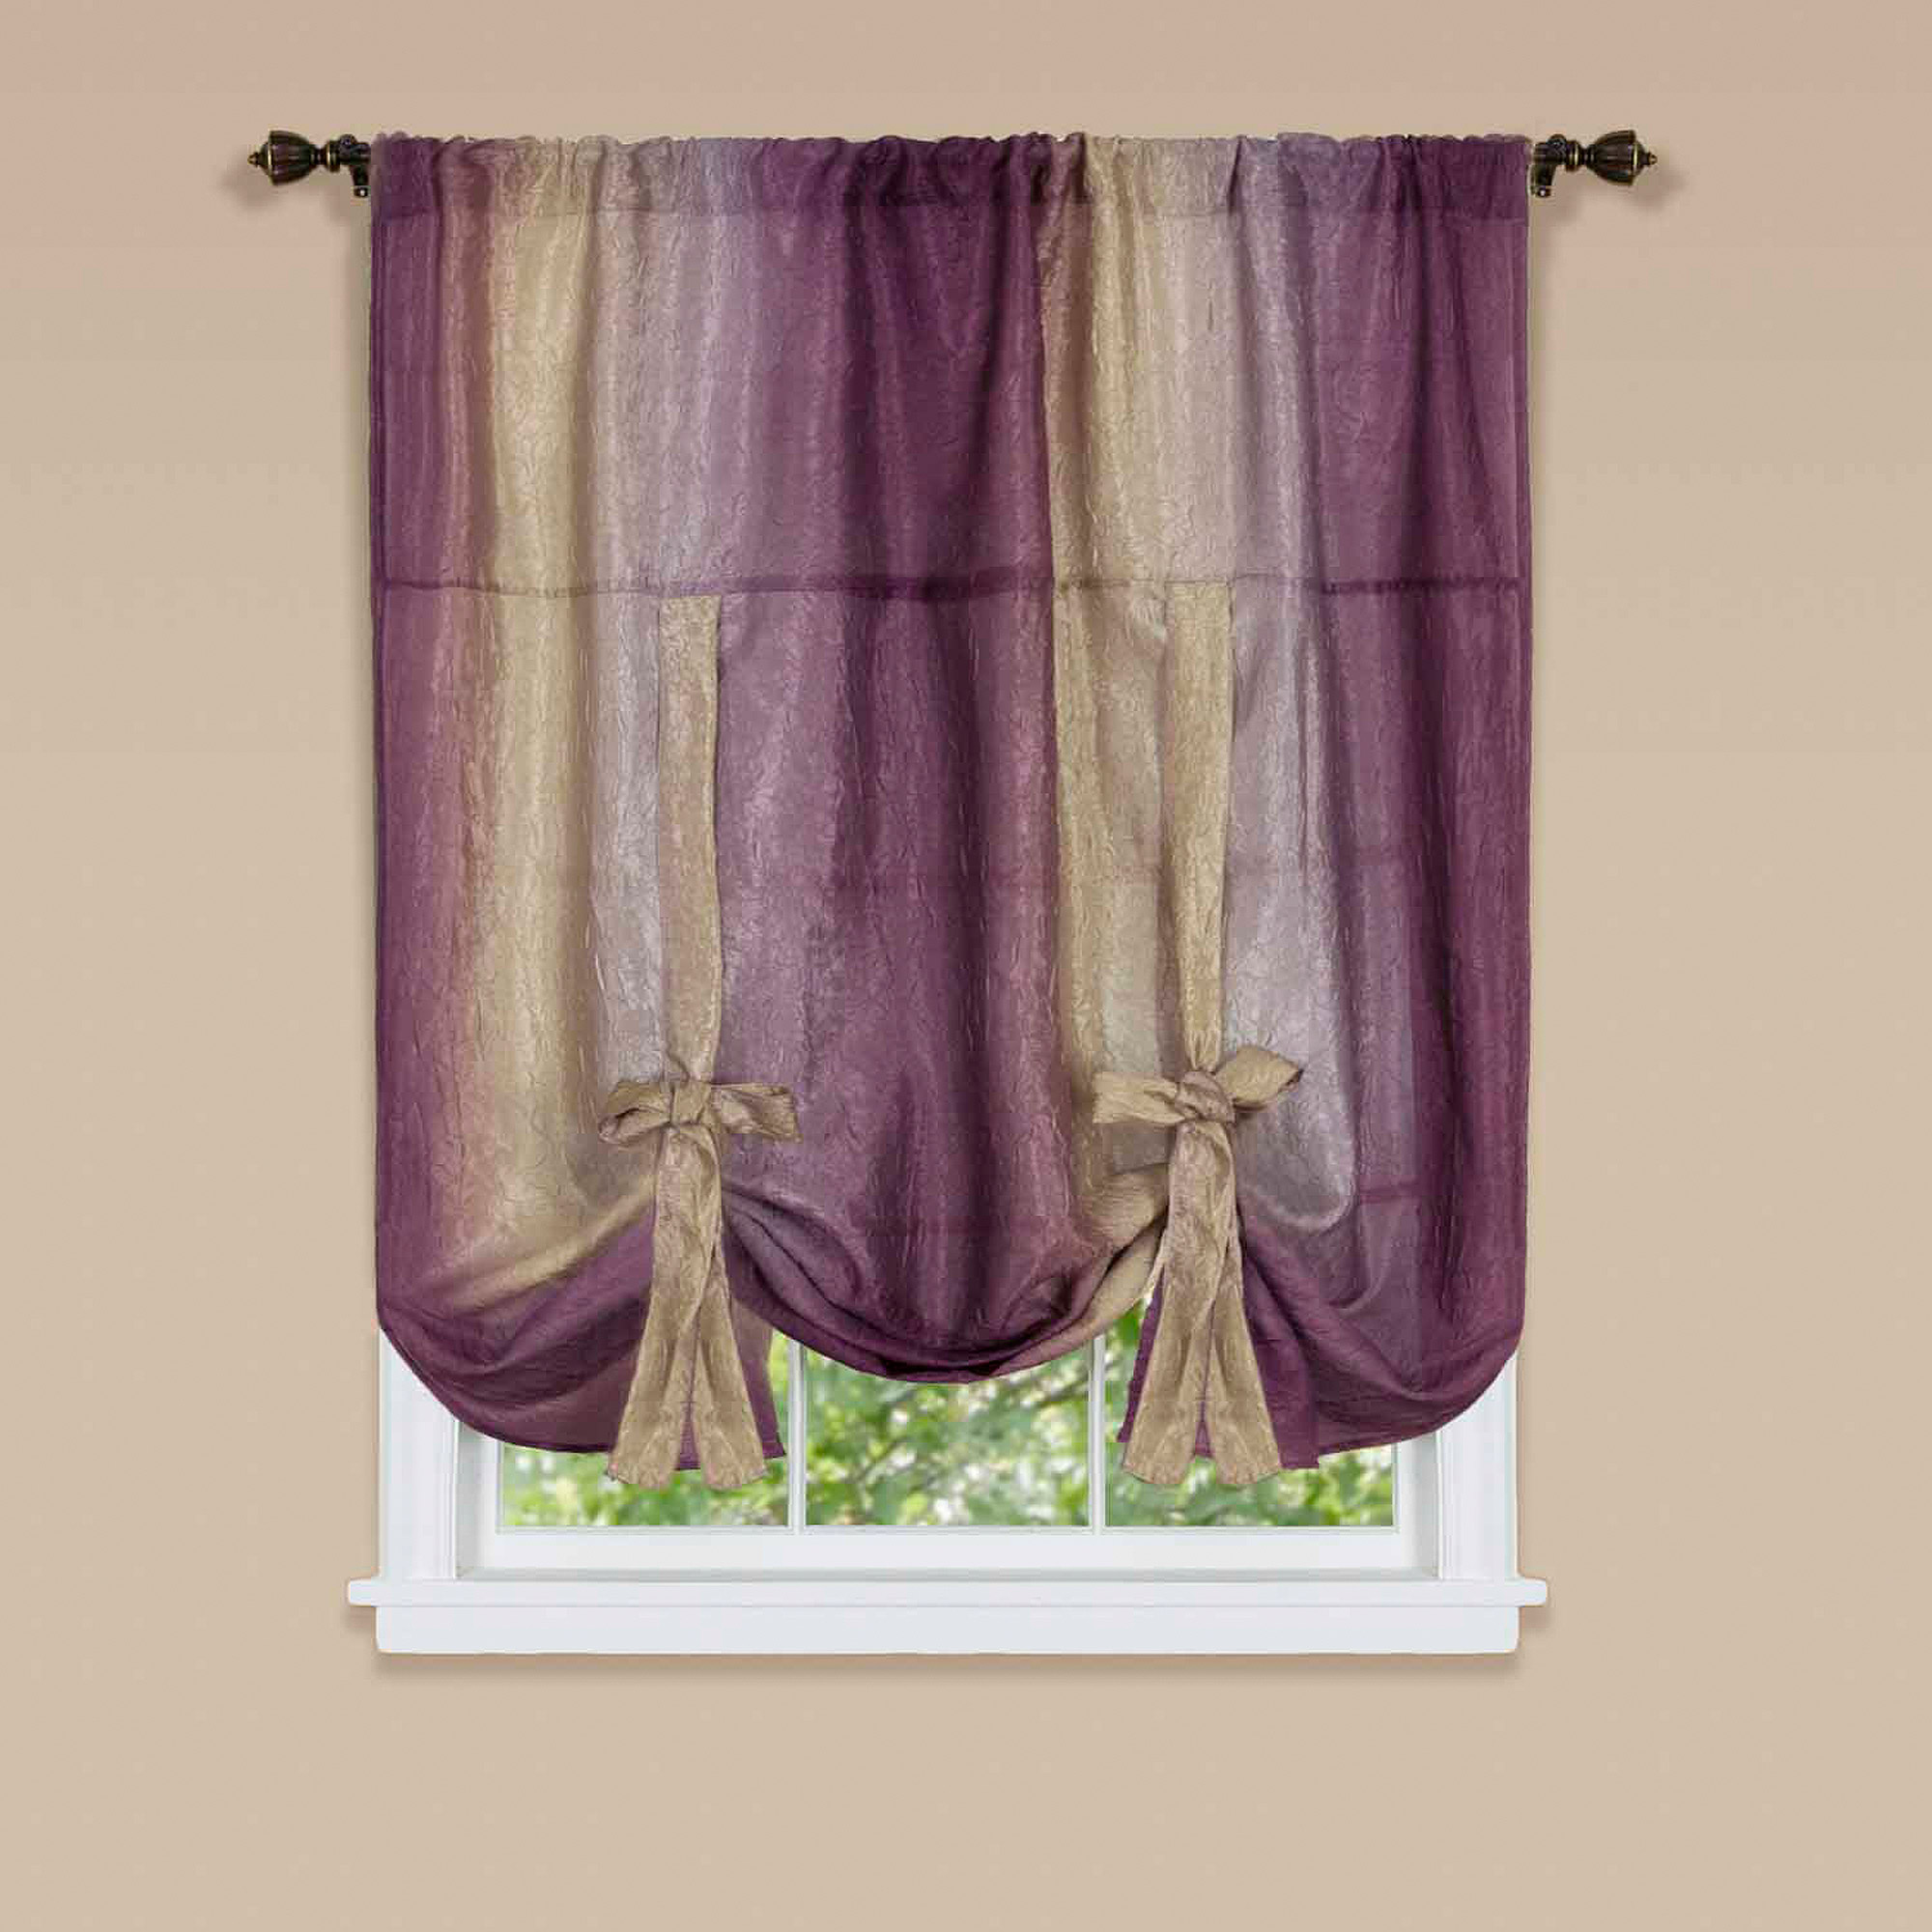 color lane curtains the fall decorative shelf easy rosemary adding door over